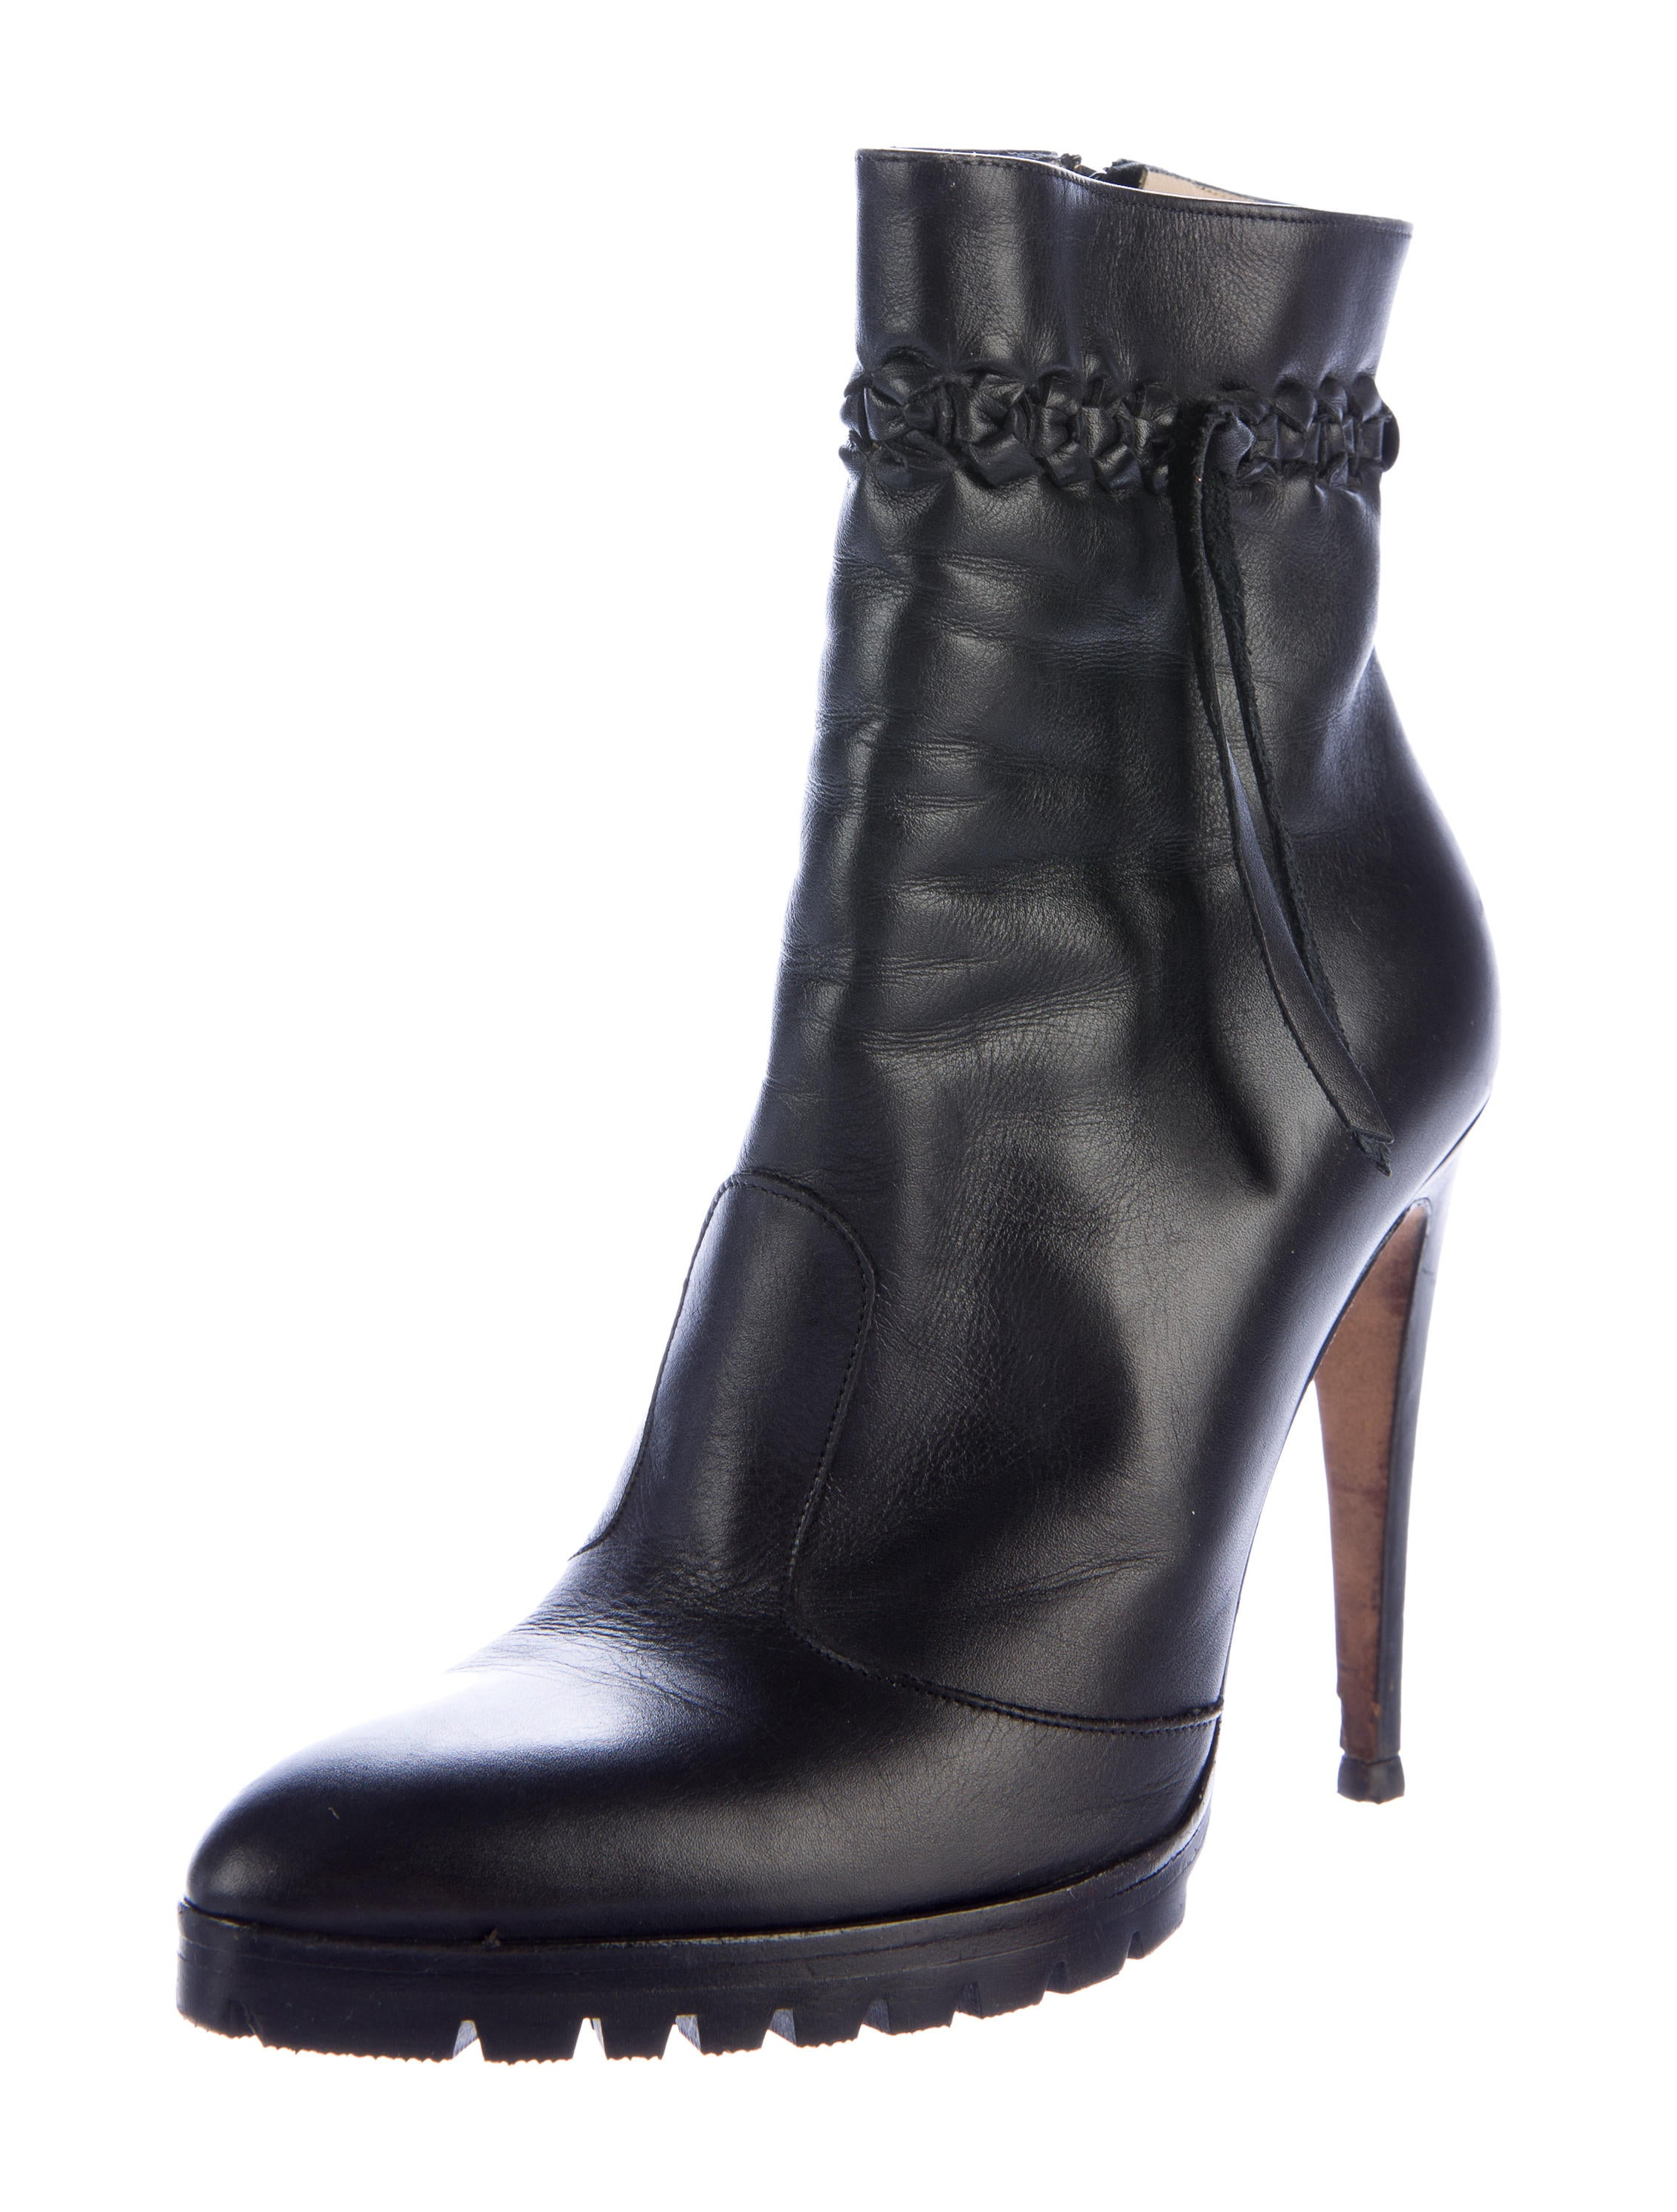 Gianni Versace Woven Trimmed Ankle Boots Shoes  : GVE204402enlarged from www.therealreal.com size 2256 x 2976 jpeg 458kB